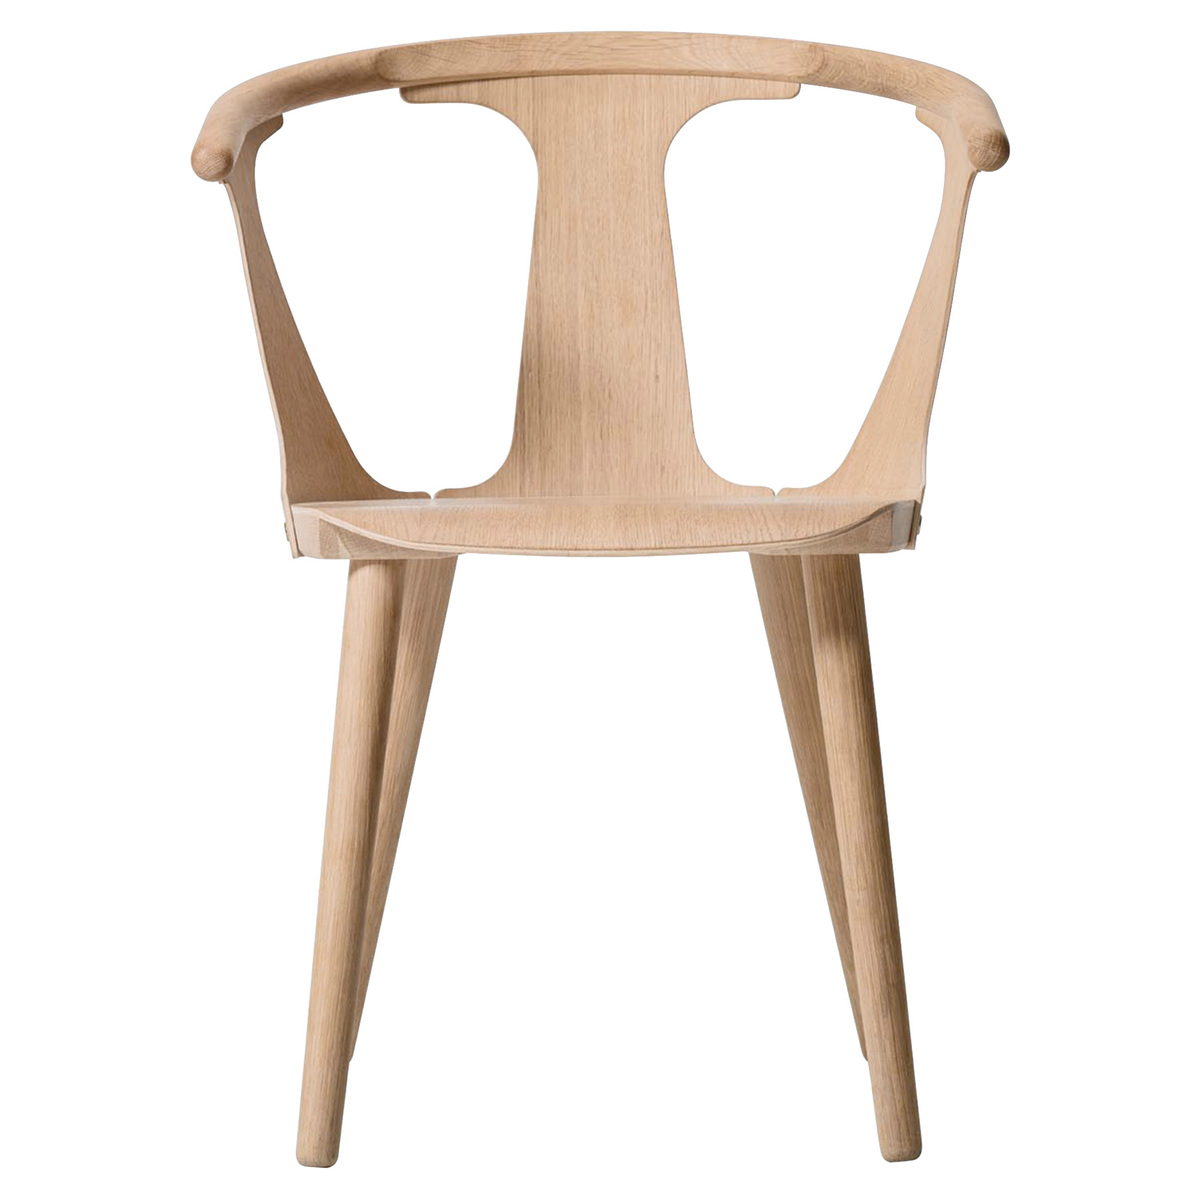 &Tradition In Between SK1 chair, white oiled oak from &Tradition